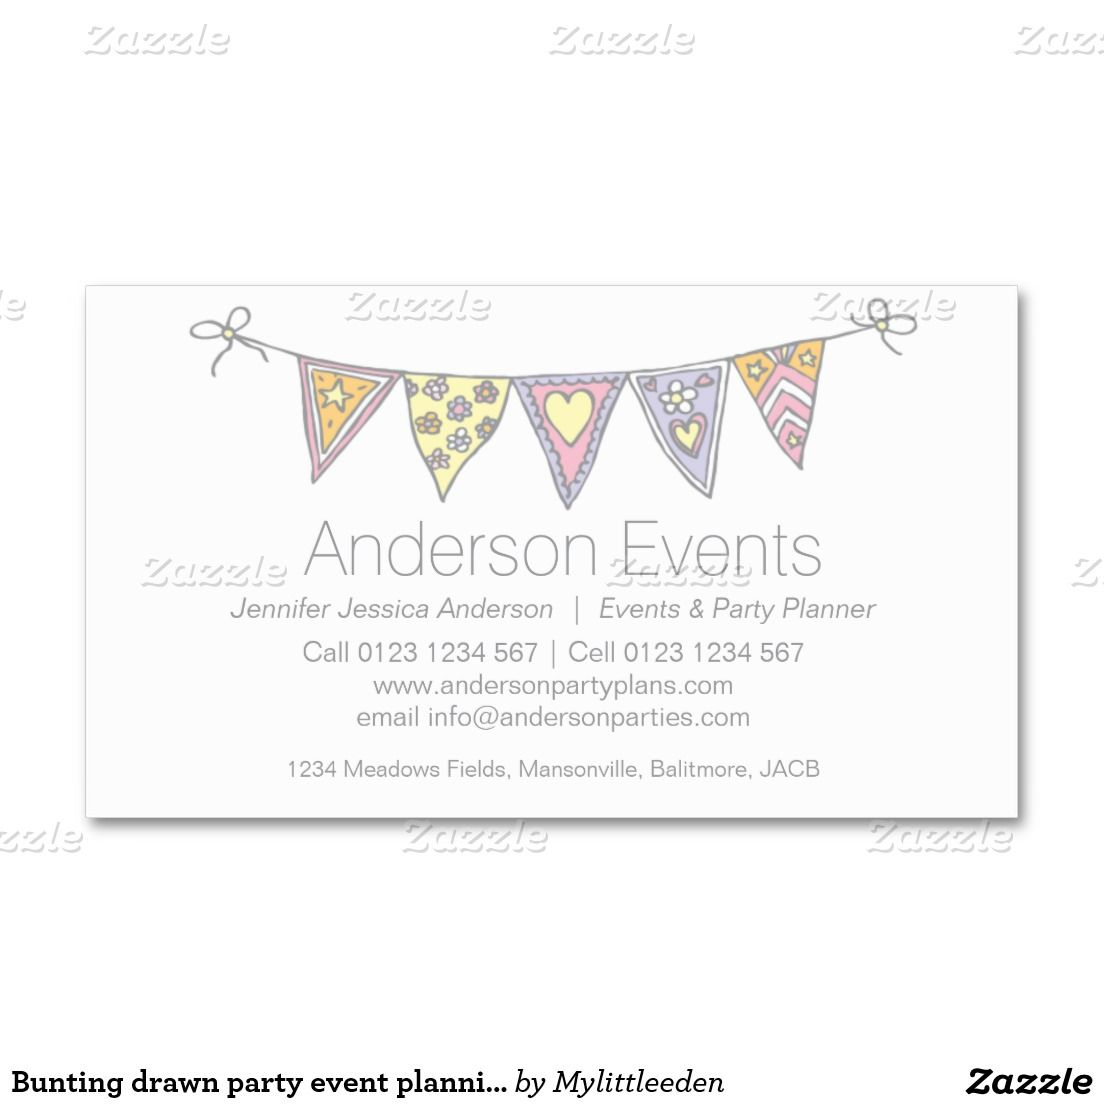 Bunting Drawn Party Event Planning Business Cards Zazzle Com In 2021 Party Planning Business Event Planning Business Cards Event Planning Business